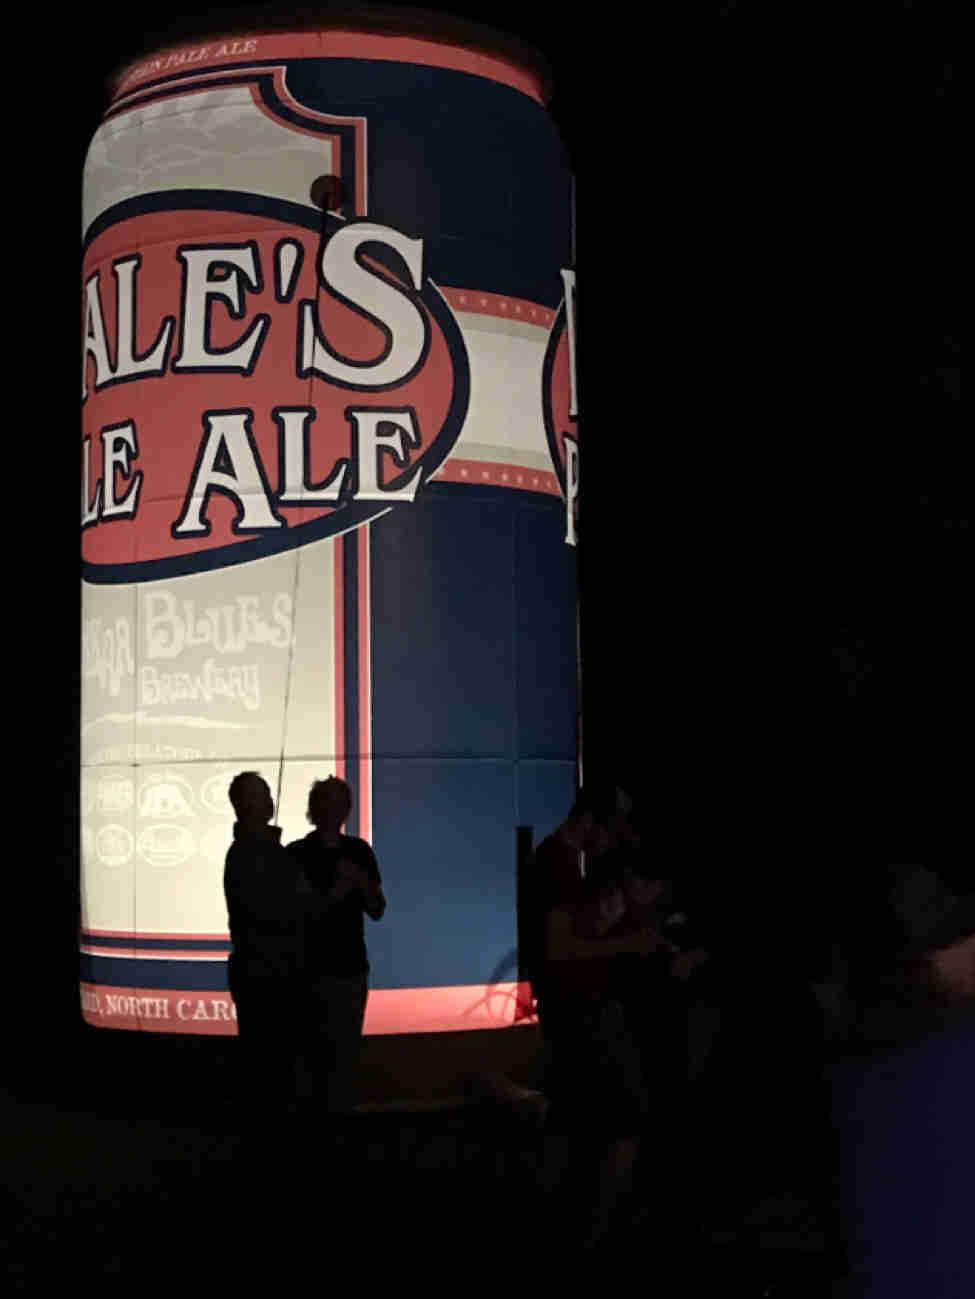 Silhouettes of people standing in front of a large, lighted inflatable beer can at night